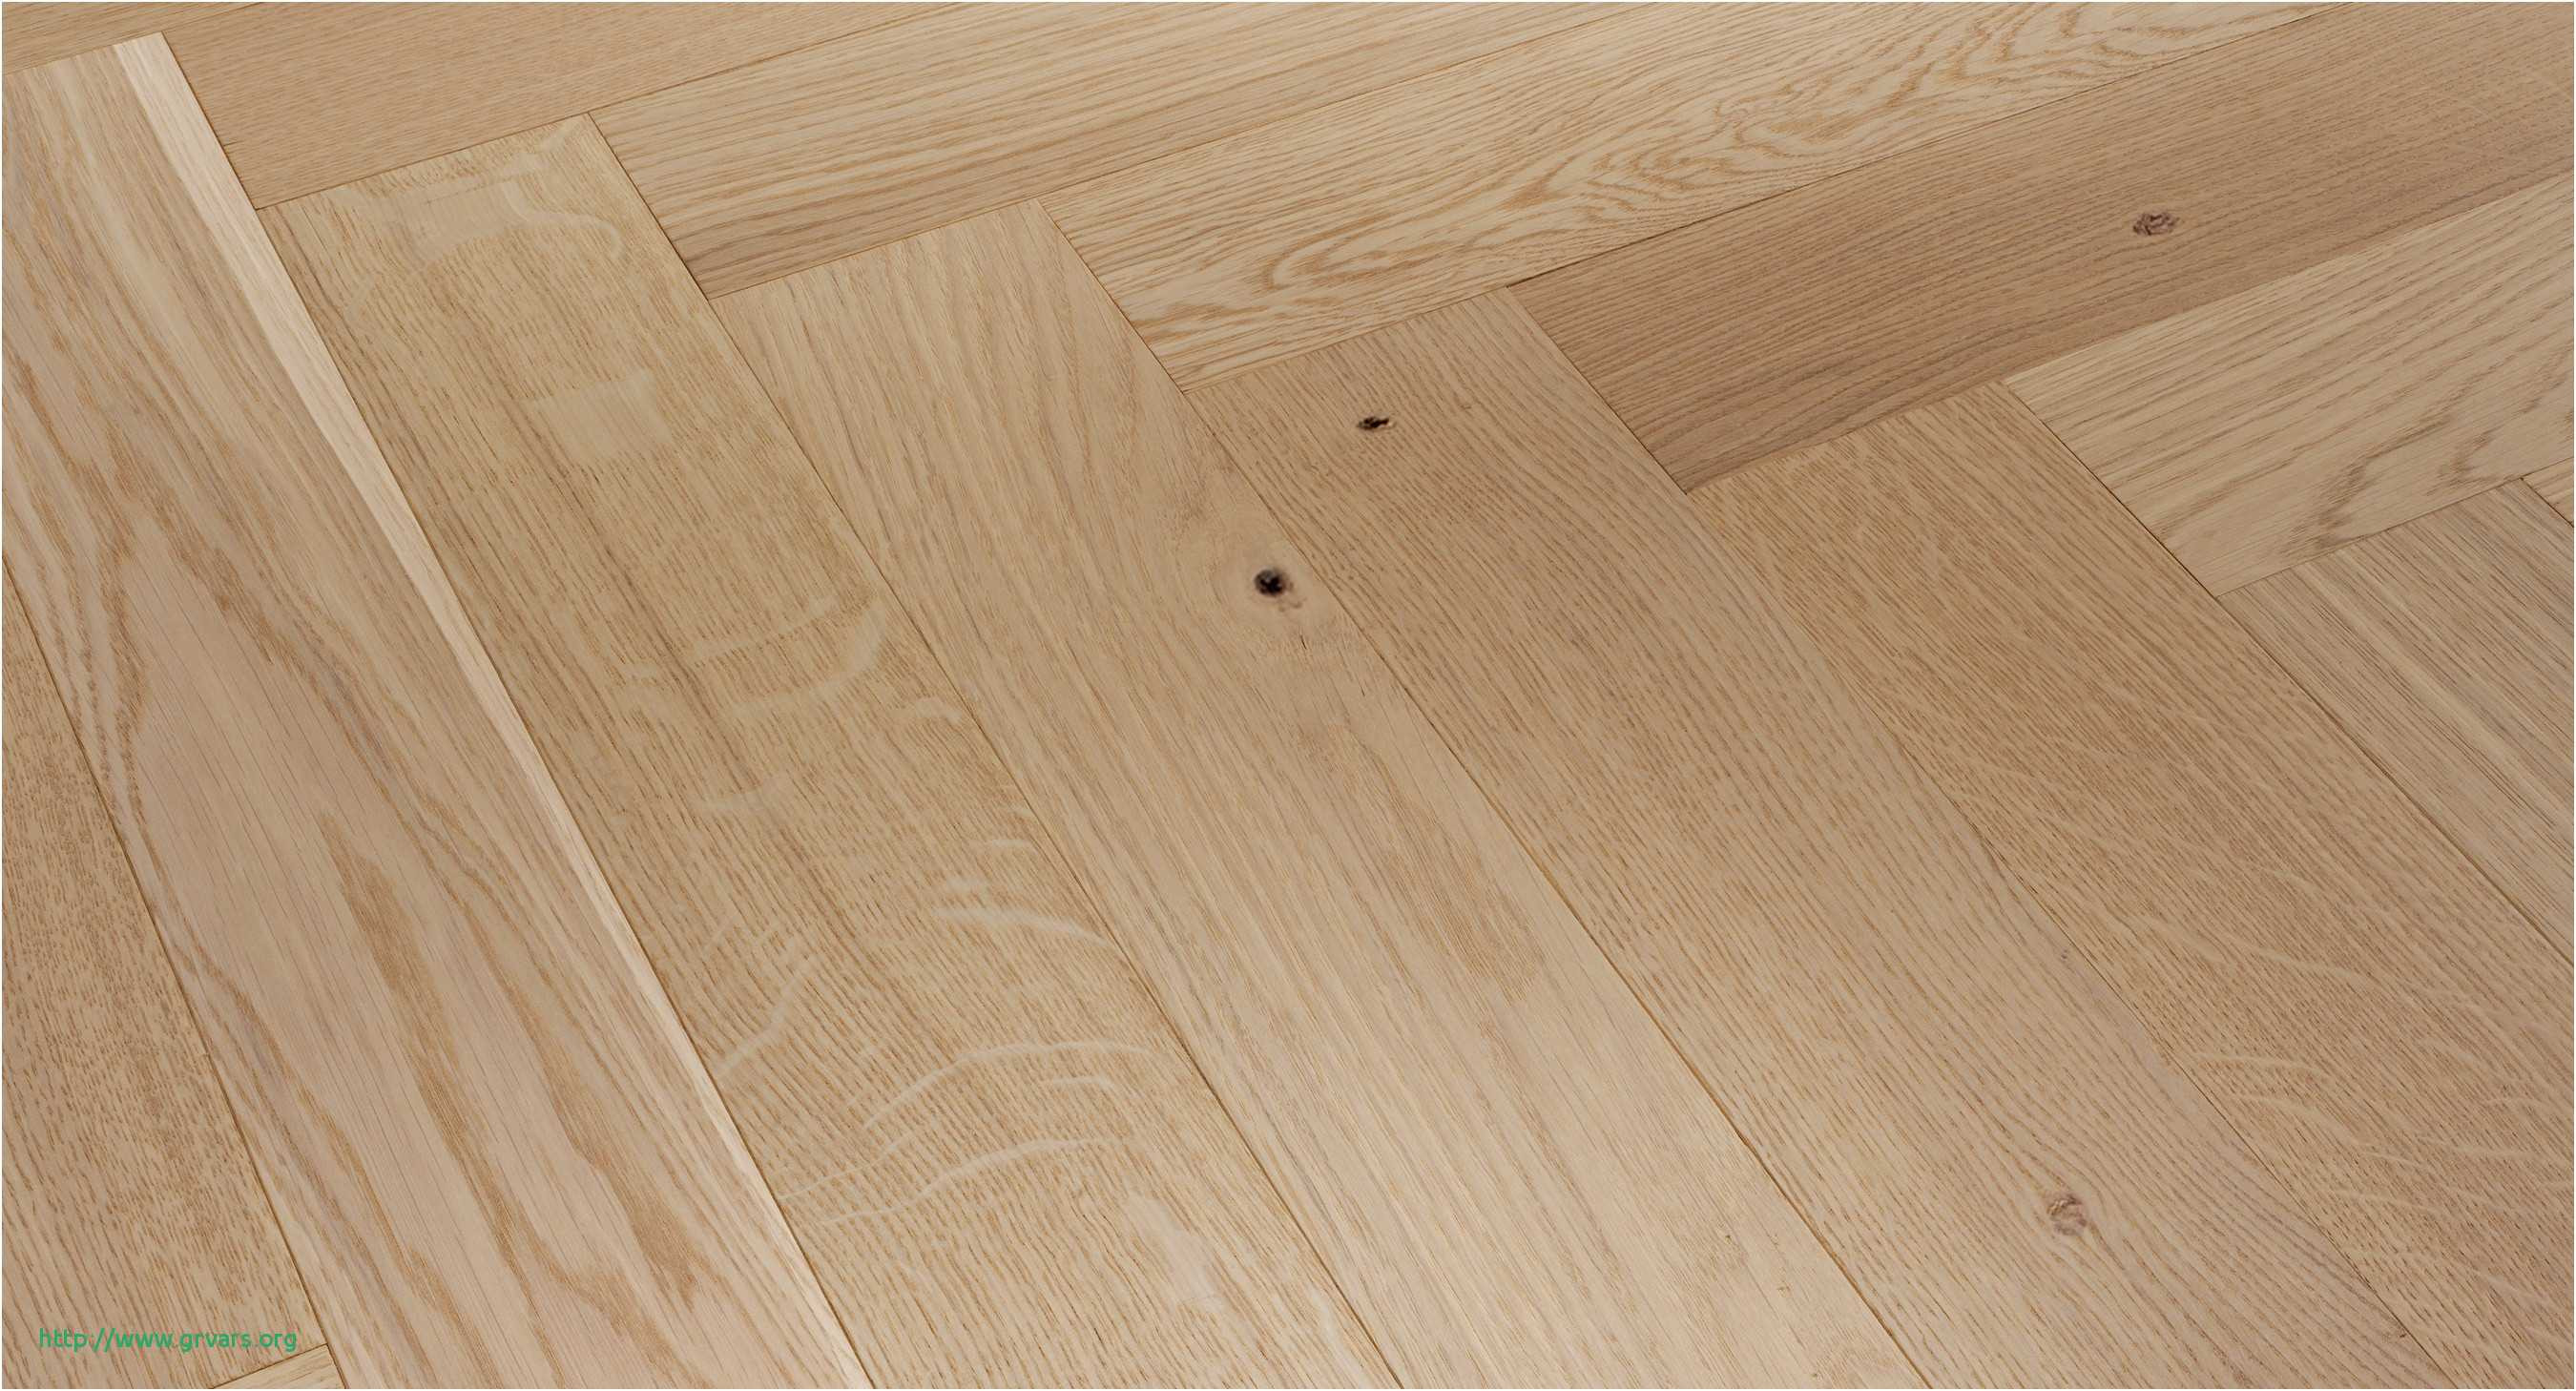 hardwood flooring washington dc of 15 luxe hardwood flooring in massachusetts ideas blog for flooring near me flooring sale near me stock 0d grace place barnegat nj flooring near me from hardwood flooring in